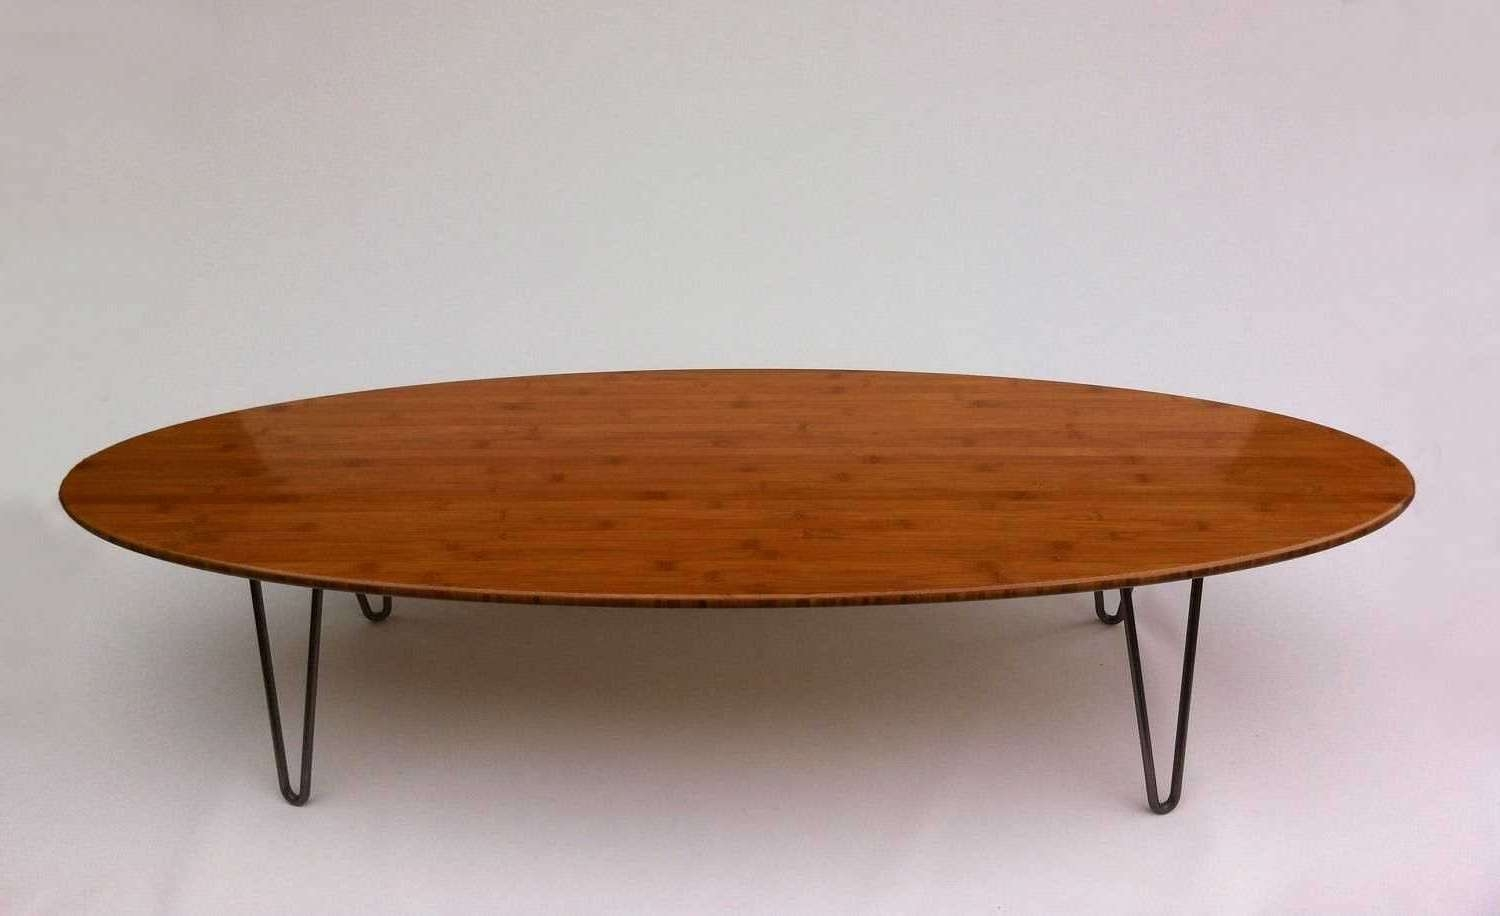 Fashionable Oval Wooden Coffee Tables Pertaining To Oval Wood Coffee Table (View 9 of 20)